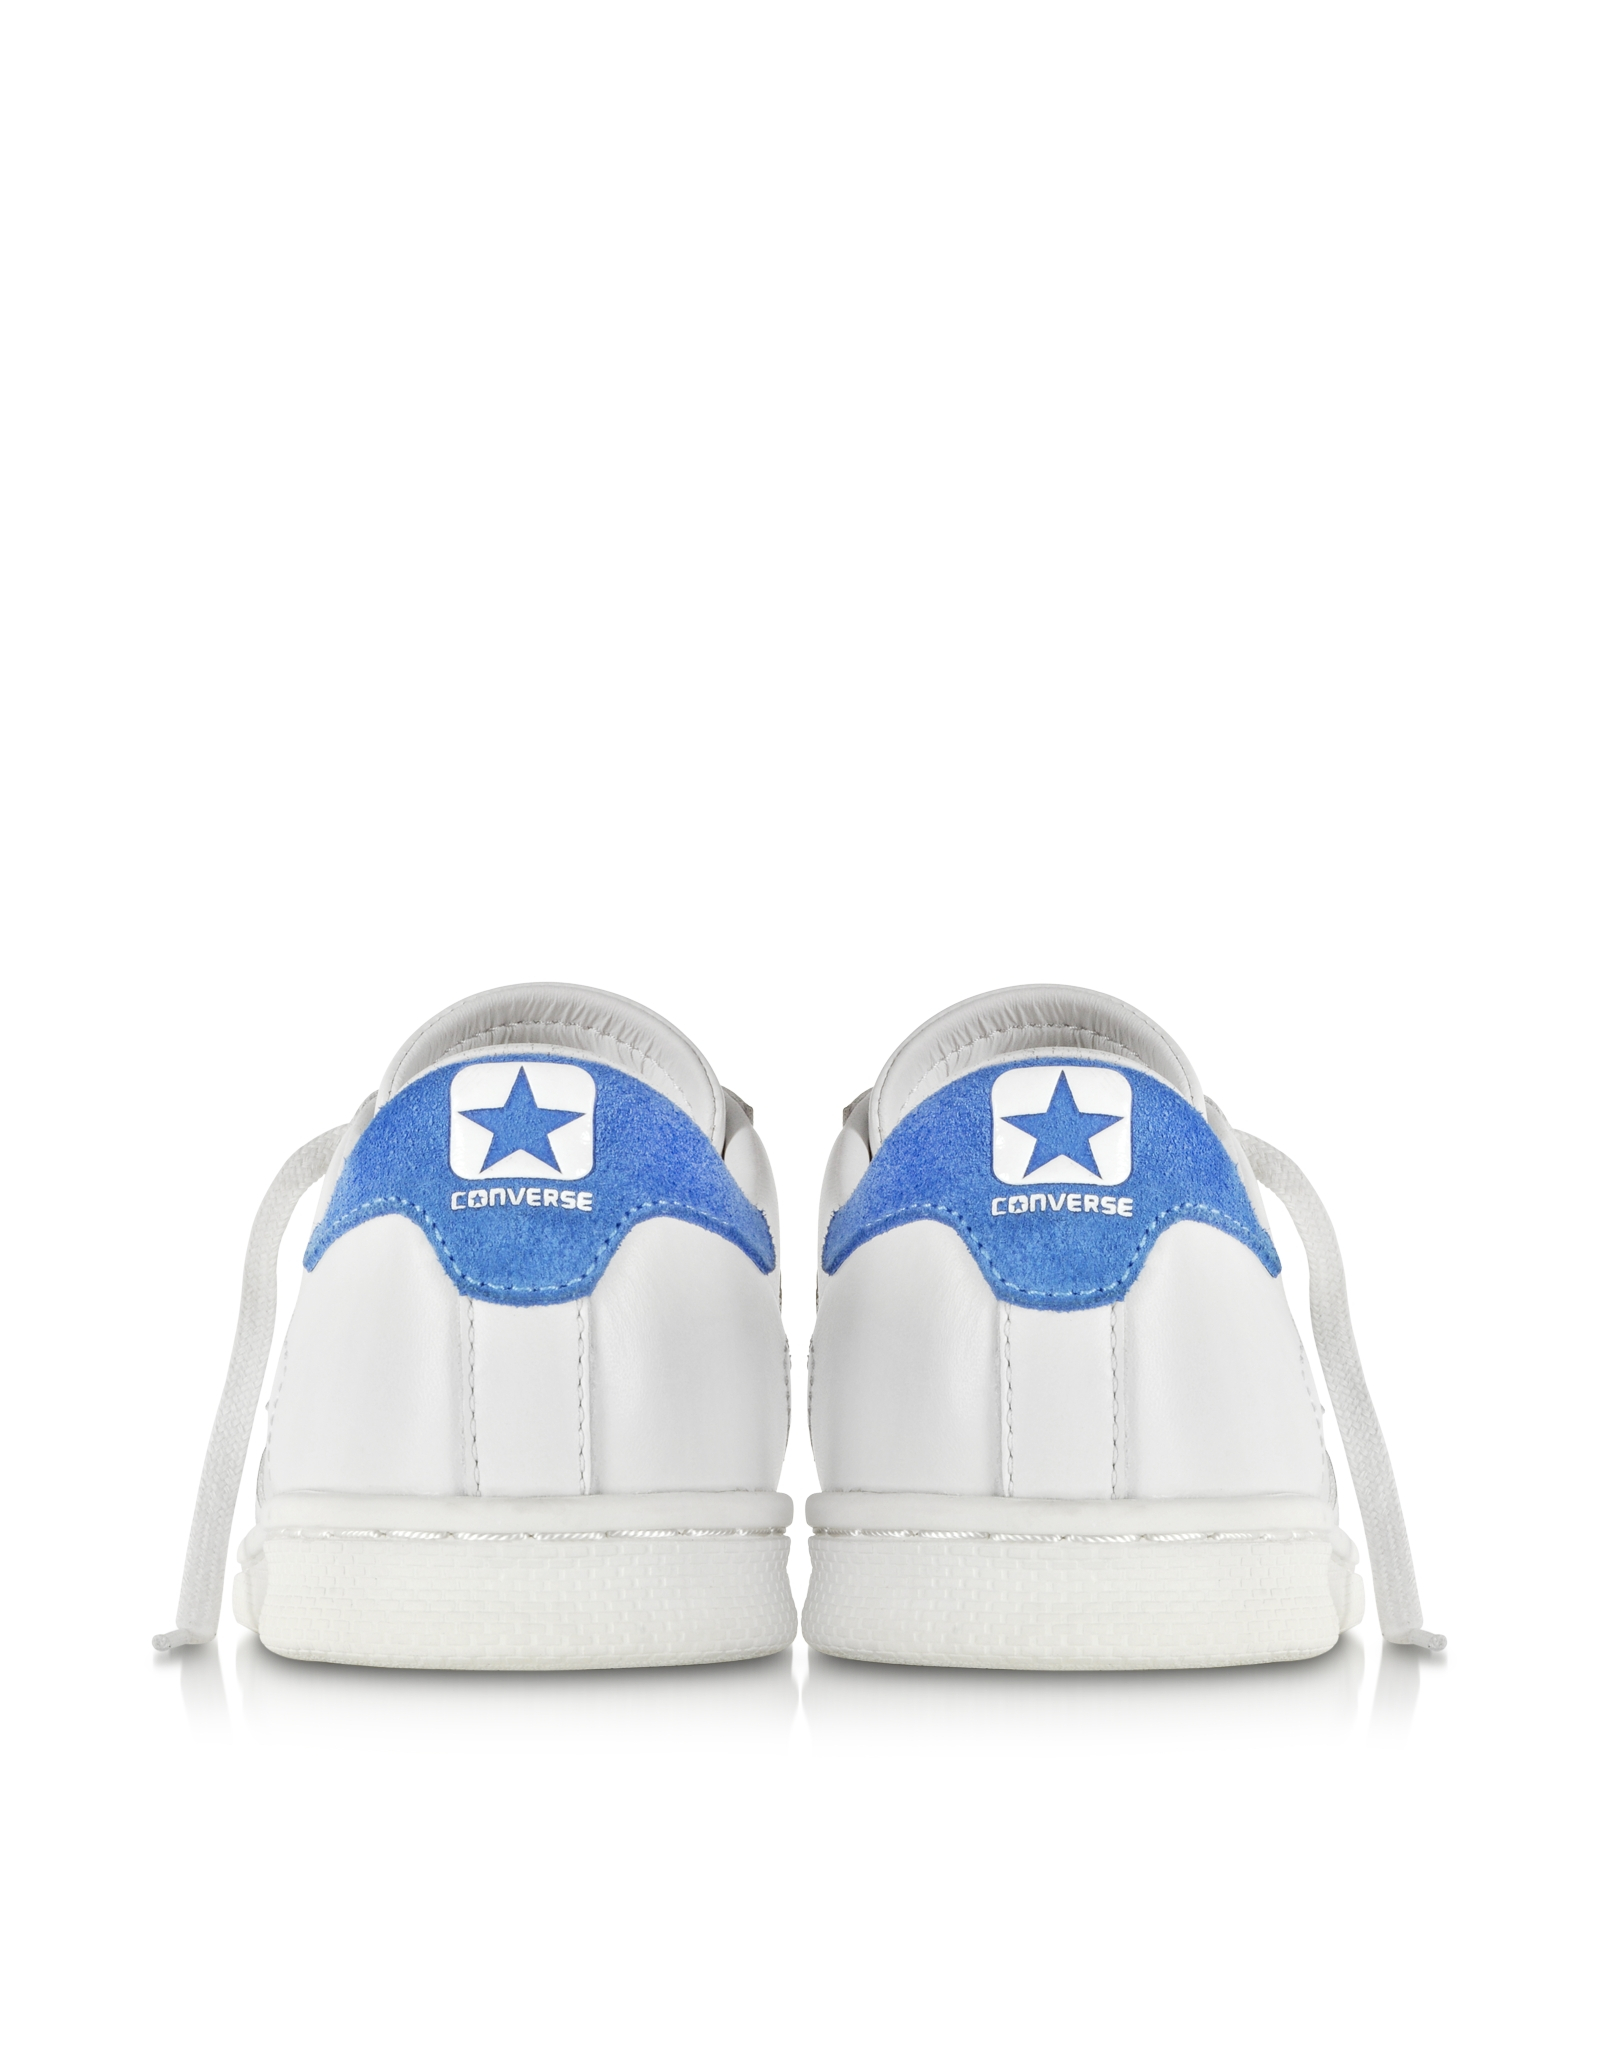 a618ada240ed94 Lyst - Converse Cons Pro Leather Lp Ox White Dust And Light Blue ...